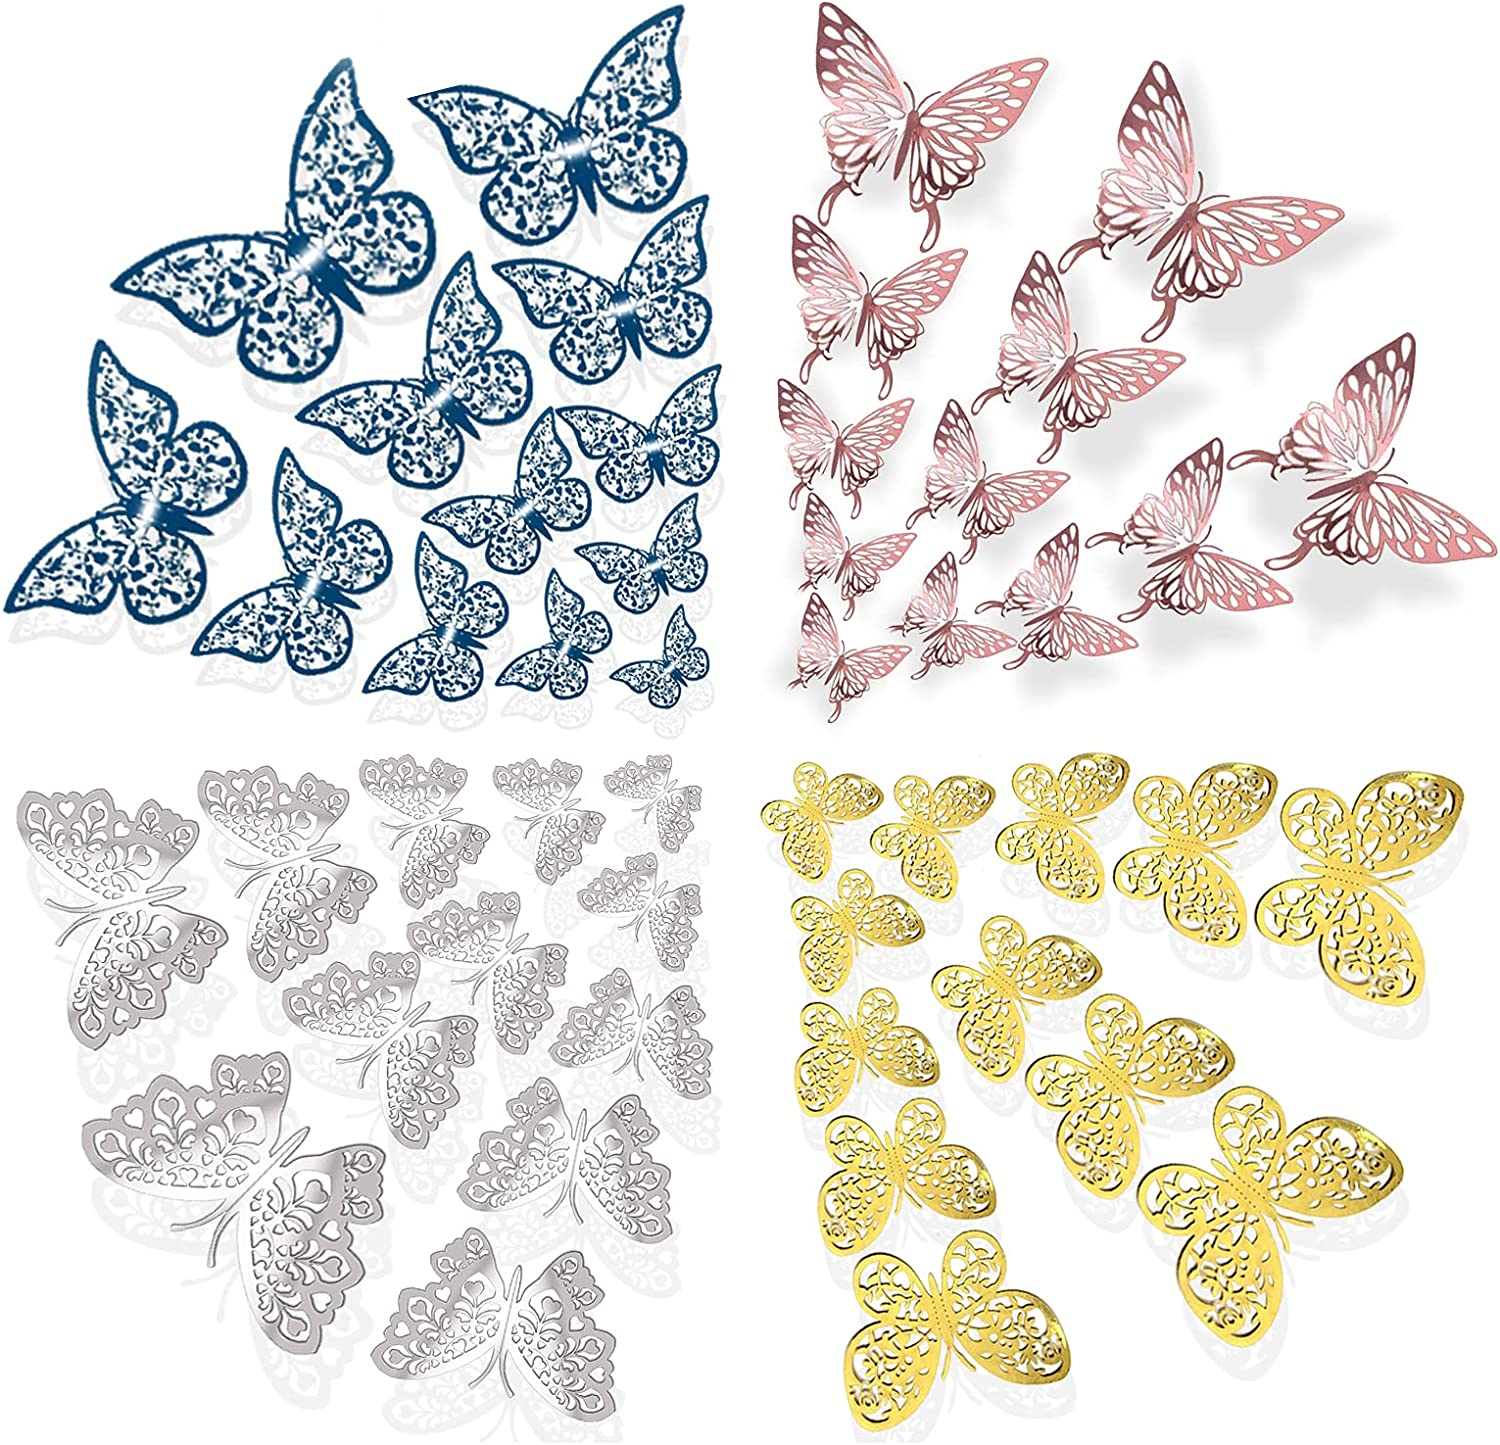 48pcs 3D Butterfly Wall Stickers,3 Sizes Butterflies Wall Decals Removable Mural Stickers Decor for Home and Room Decoration (3D Butterfly-1)